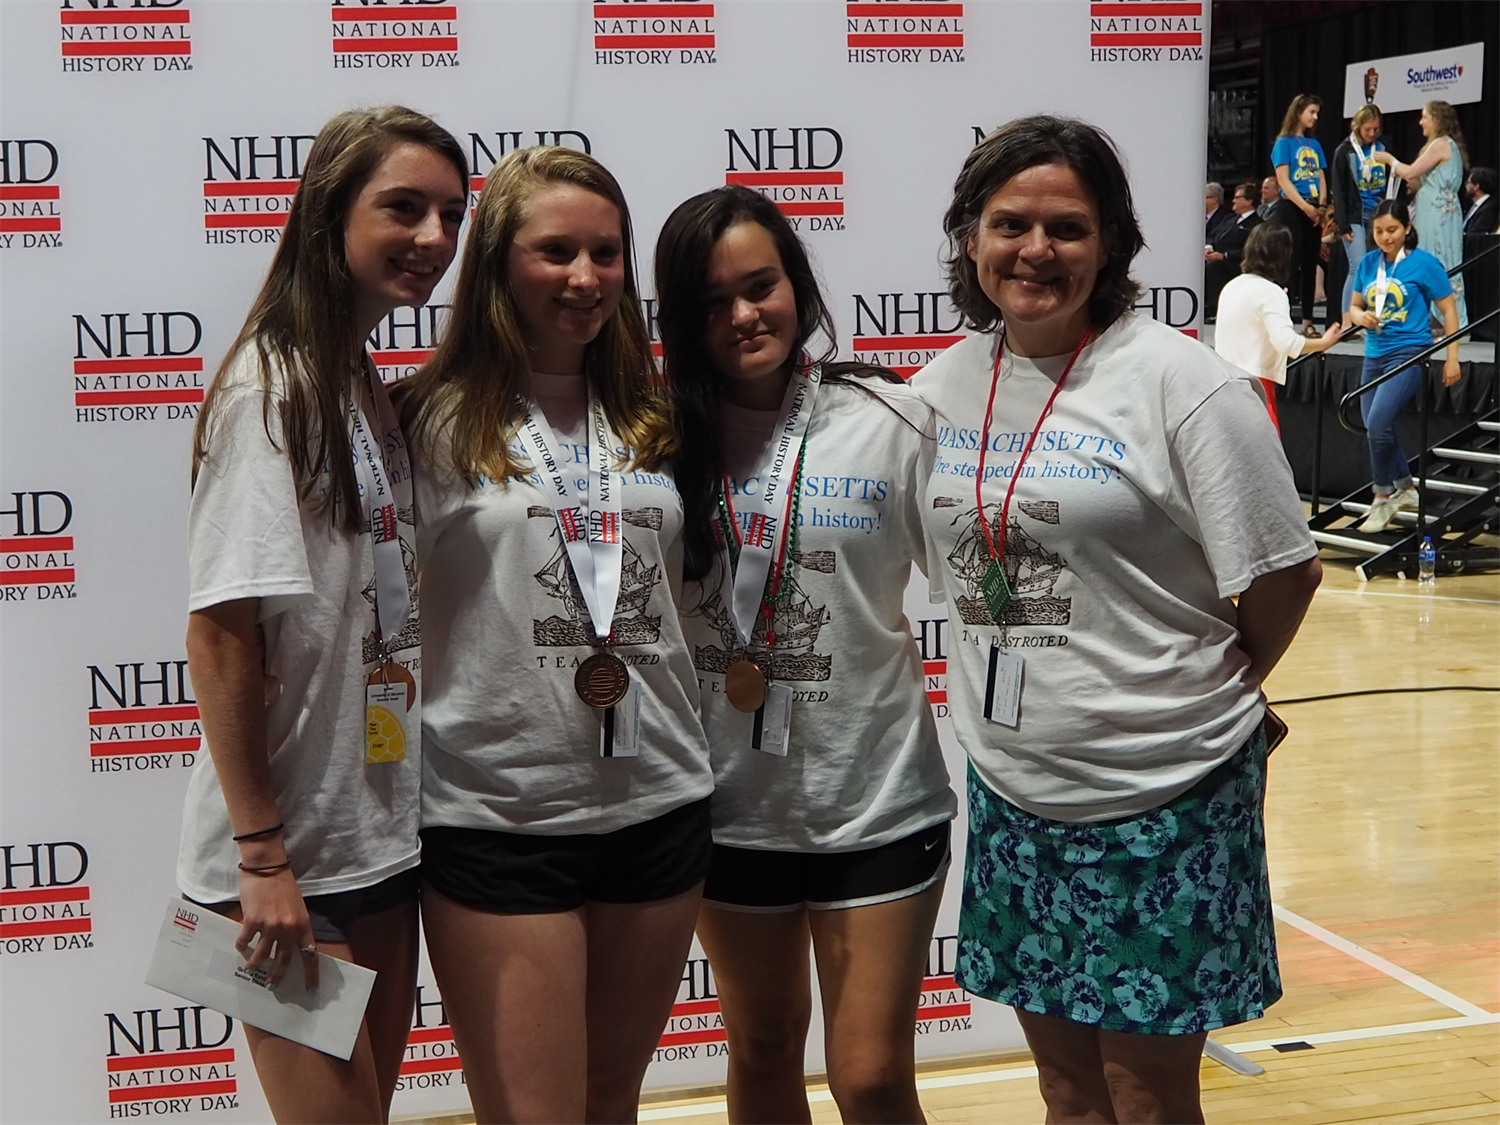 A teacher poses with three students in front of a backdrop with the NHD logo at the NHD National Competition.  All three students wear medals, and they and their teacher are wearing NHD Massachusetts T-shirts.